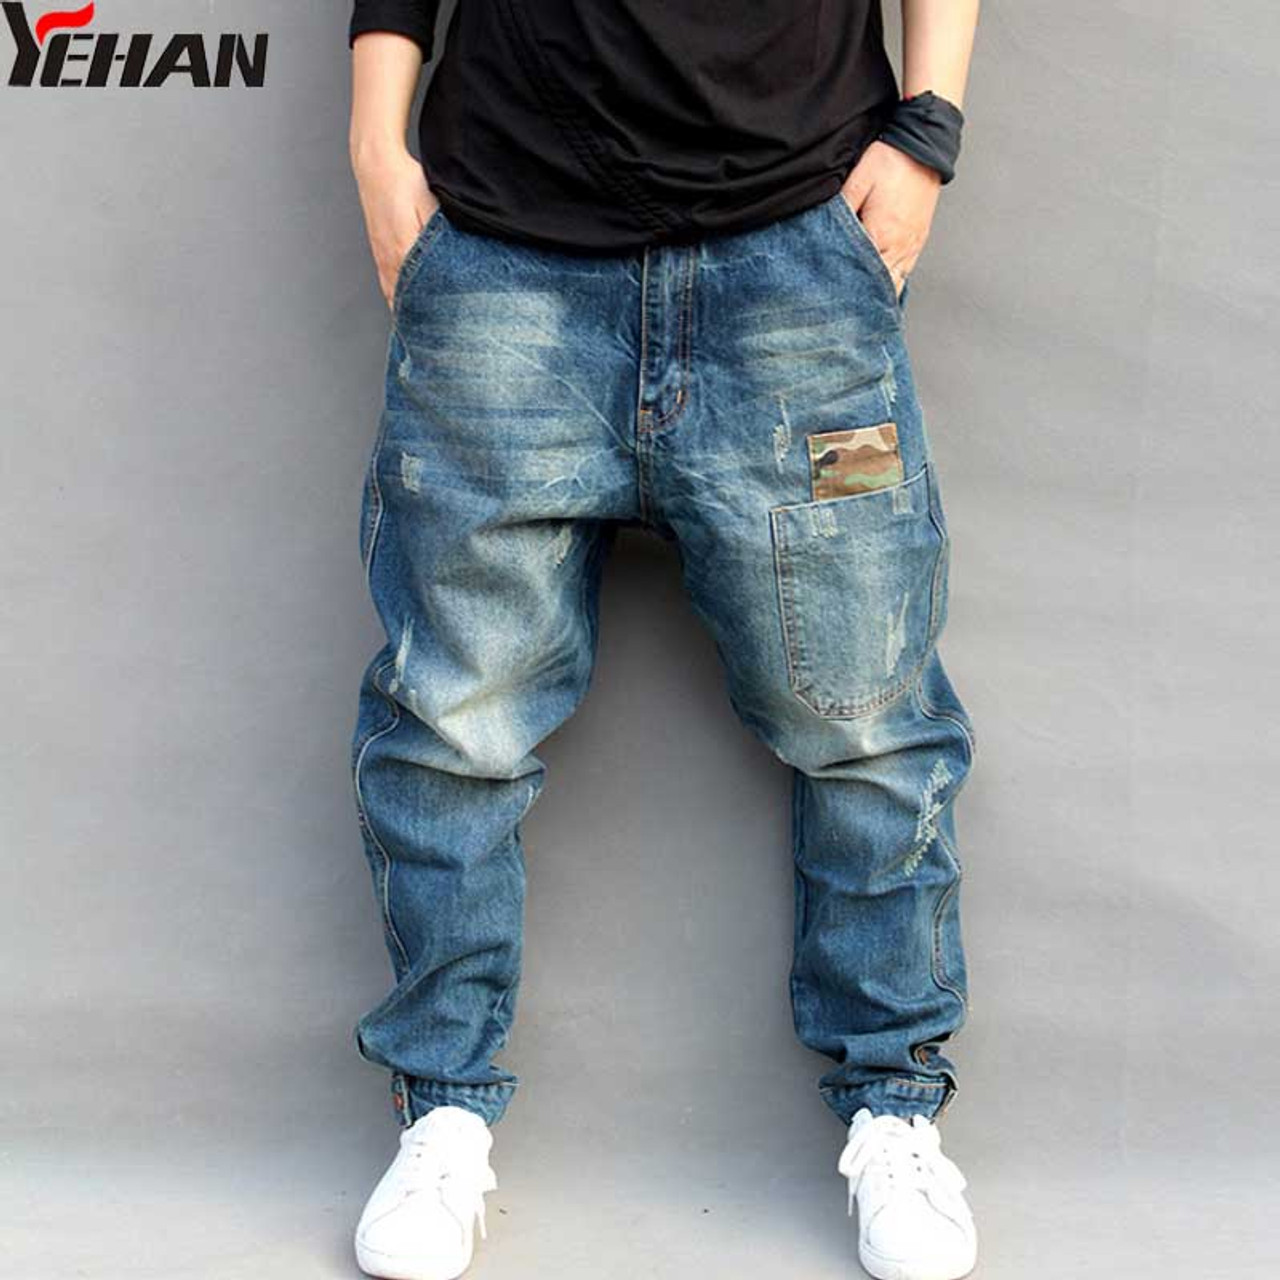 31548a4ac99 Men s Jeans Plus Size Stretchy Loose Tapered Harem Jeans Cotton Breathable  Denim Jeans Baggy Jogger Casual ...